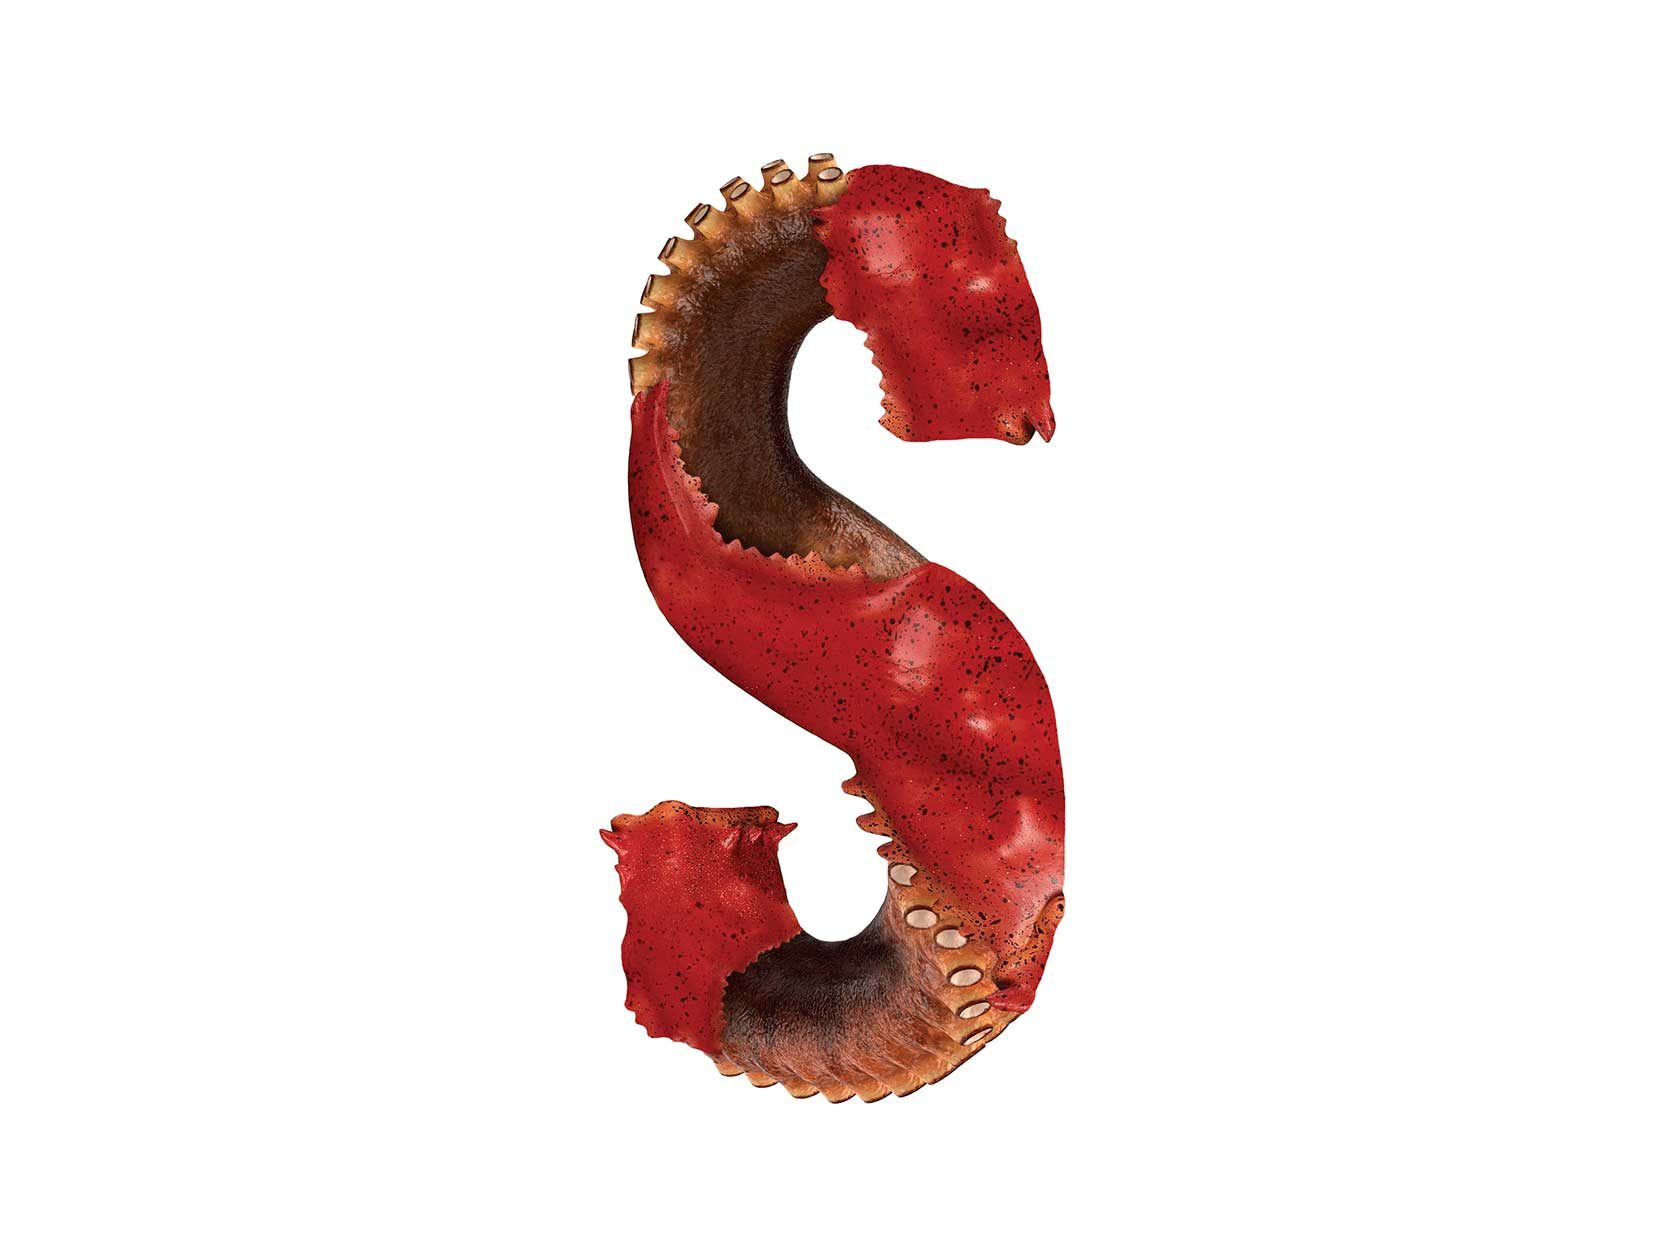 Bird Headed Monster Letter S Design by Furia